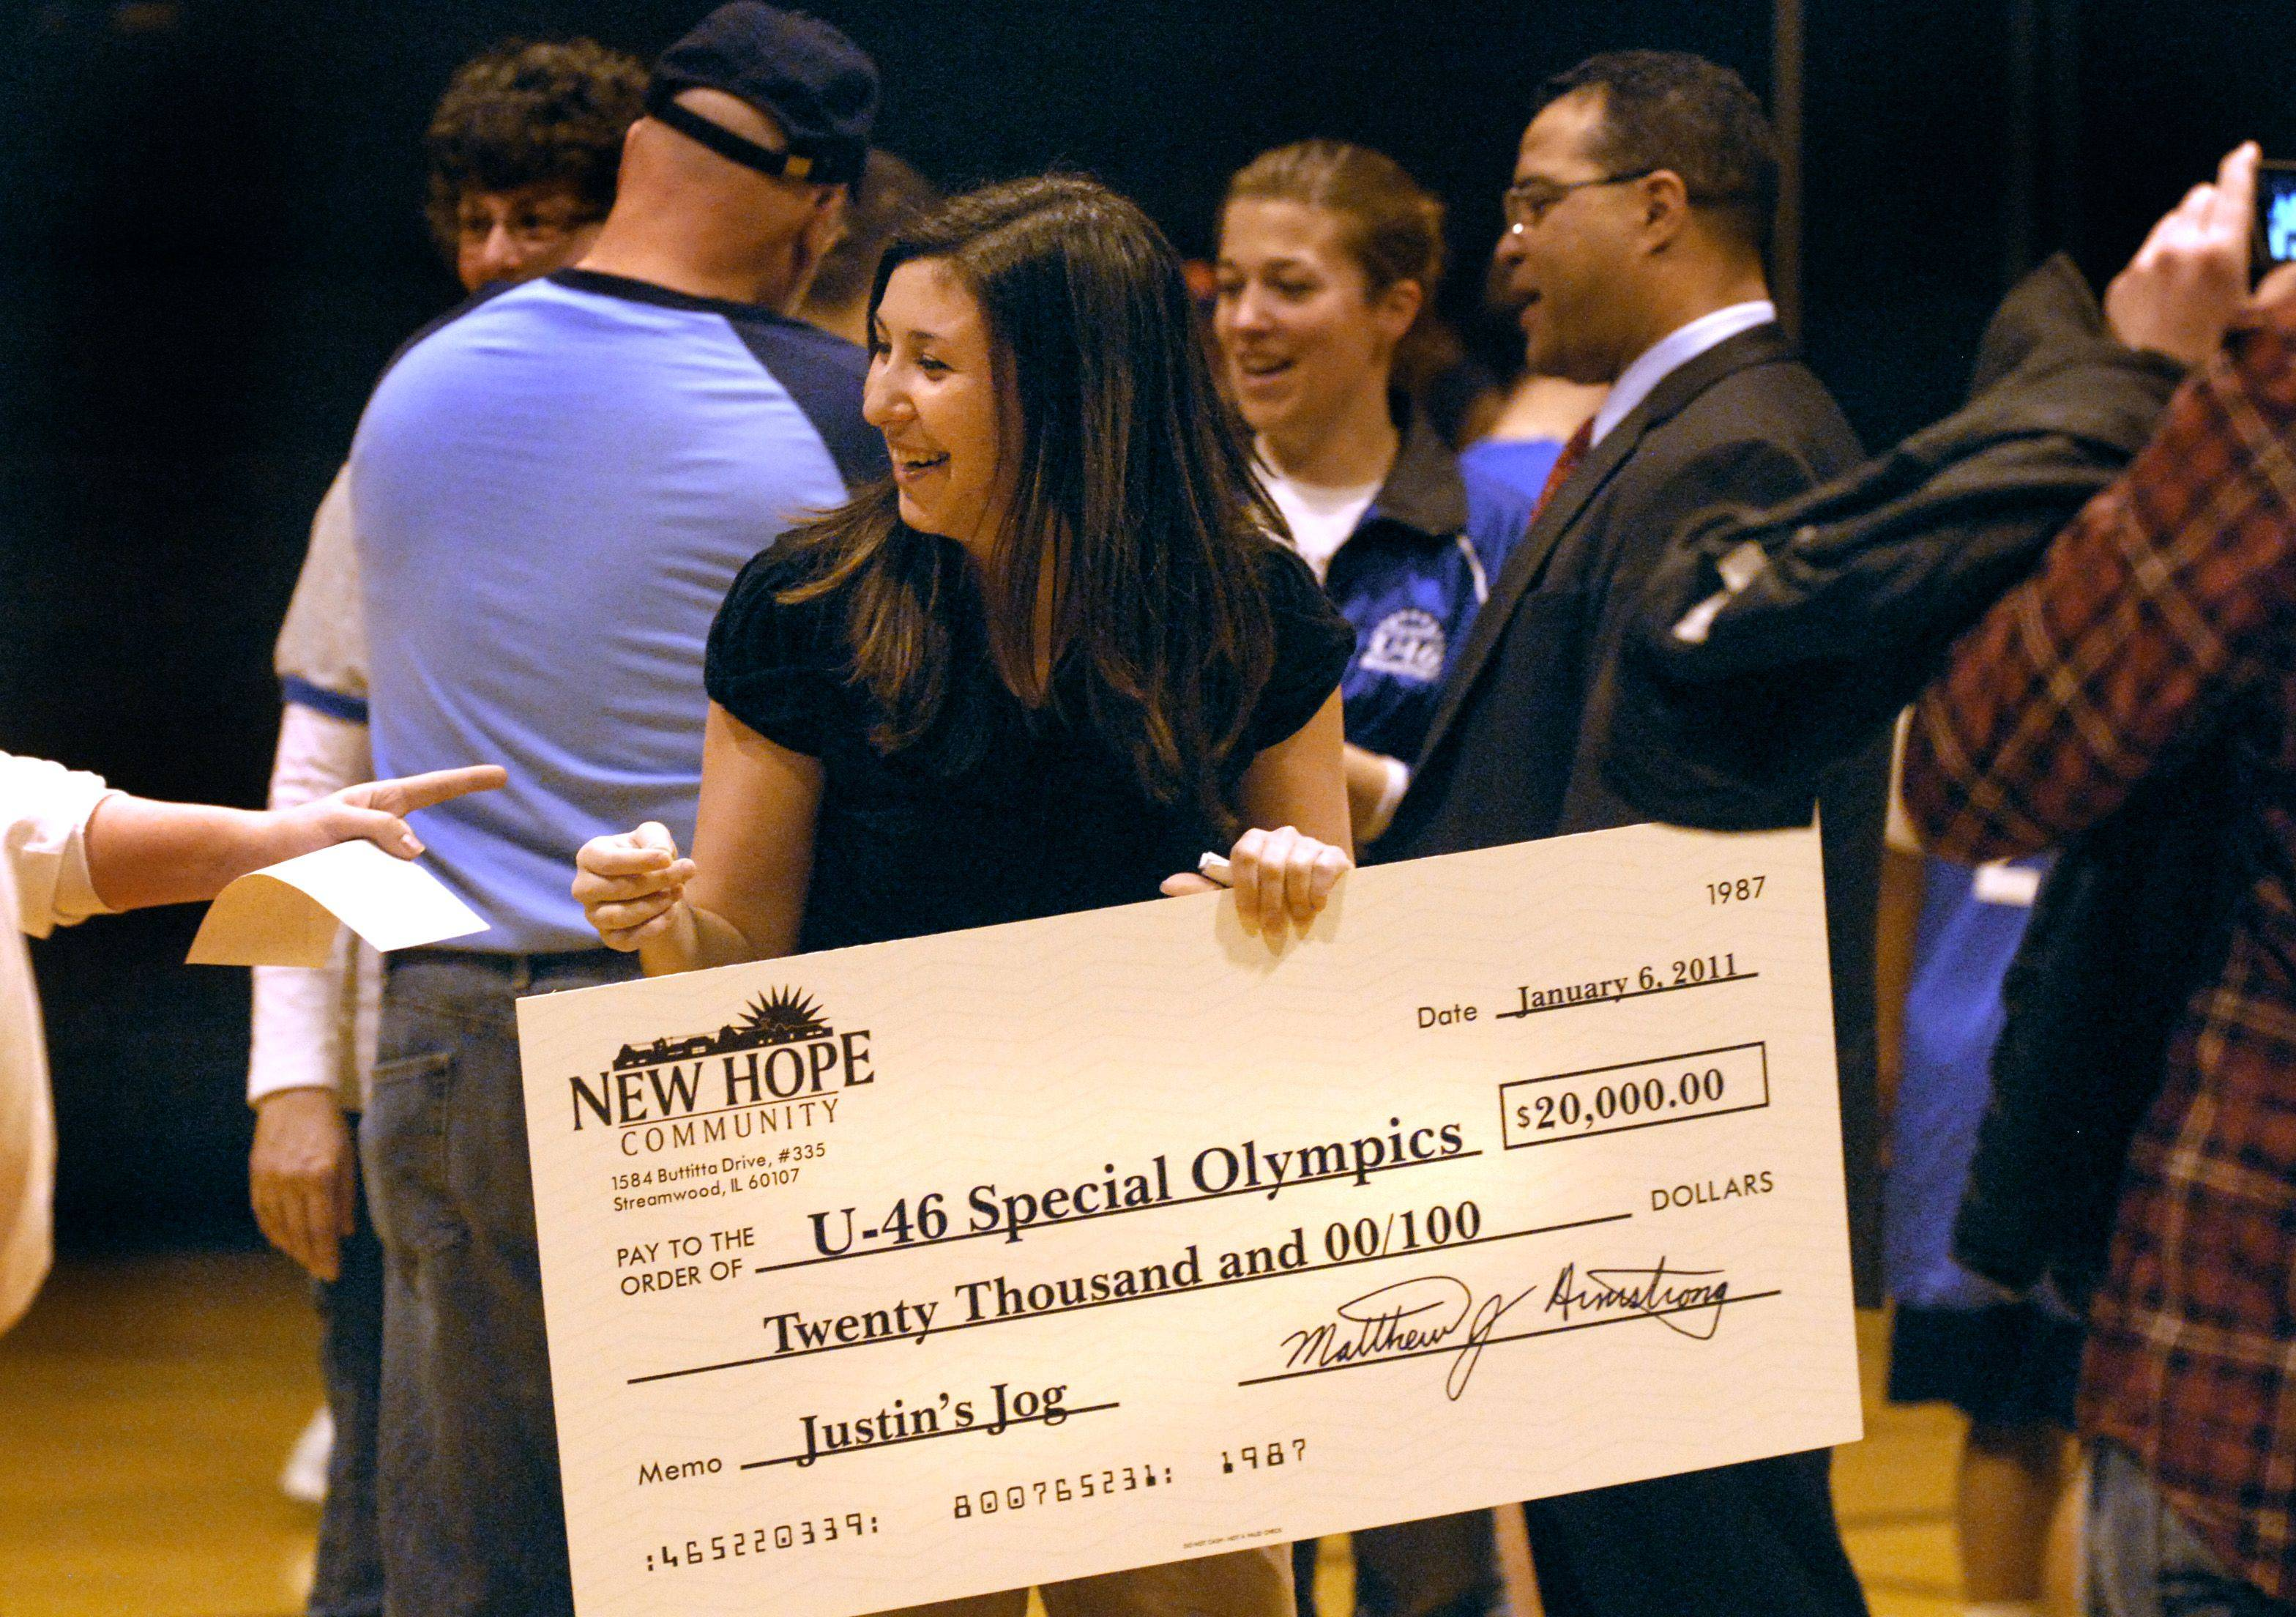 In memory of her boyfriend, Mary Bares of Streamwood presents the 20,000 dollar check to U46 Special Olympics Thursday night at Gifford Street Alternative High School. The proceeds will benefit the district's track, basketball, and bowling Special Olympics programs. Bares raised the money through donations.